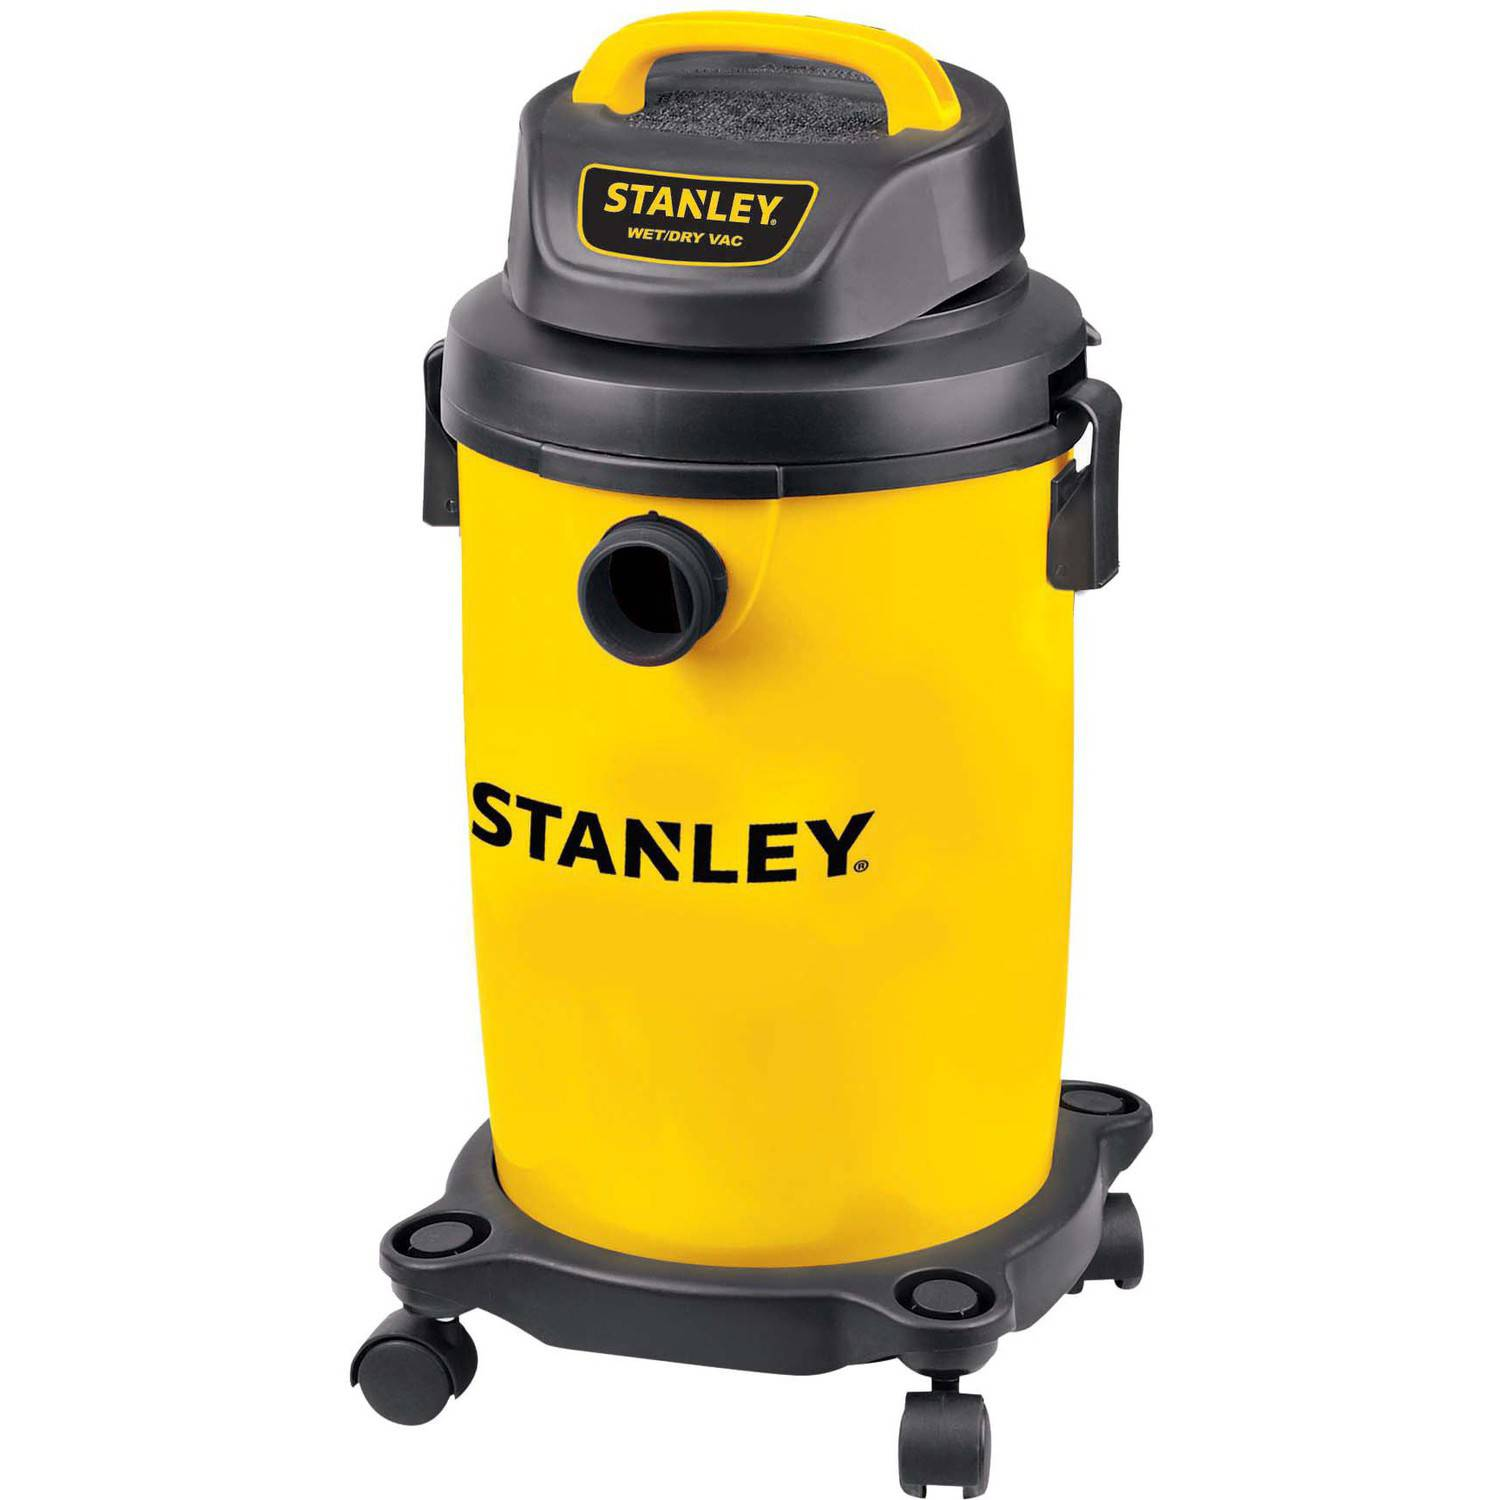 Stanley 4.5-gallon, 4.5-peak horse power, wet dry vacuum